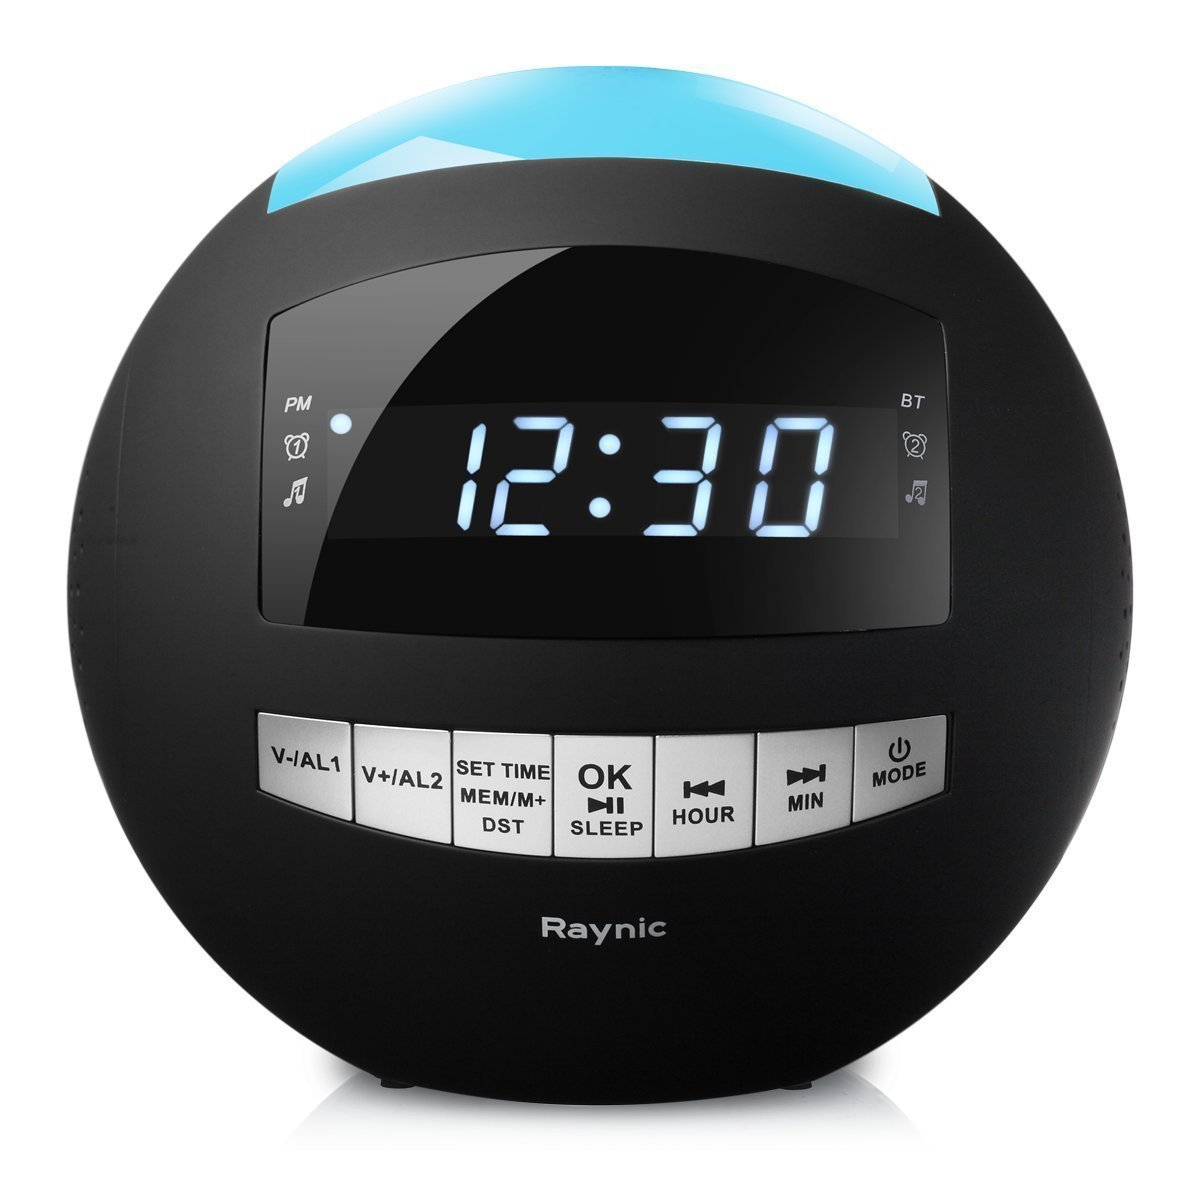 Raynic Digital Alarm Clock Bluetooth with AM/FM Radio, Dual Alarms, USB Charging Ports, Timer, Snooze, Dimmer, Loud for Heavy Sleepers, Bedrooms, Kids, Desk, 7-Color Night Light [2018 New Upgraded] by Raynic